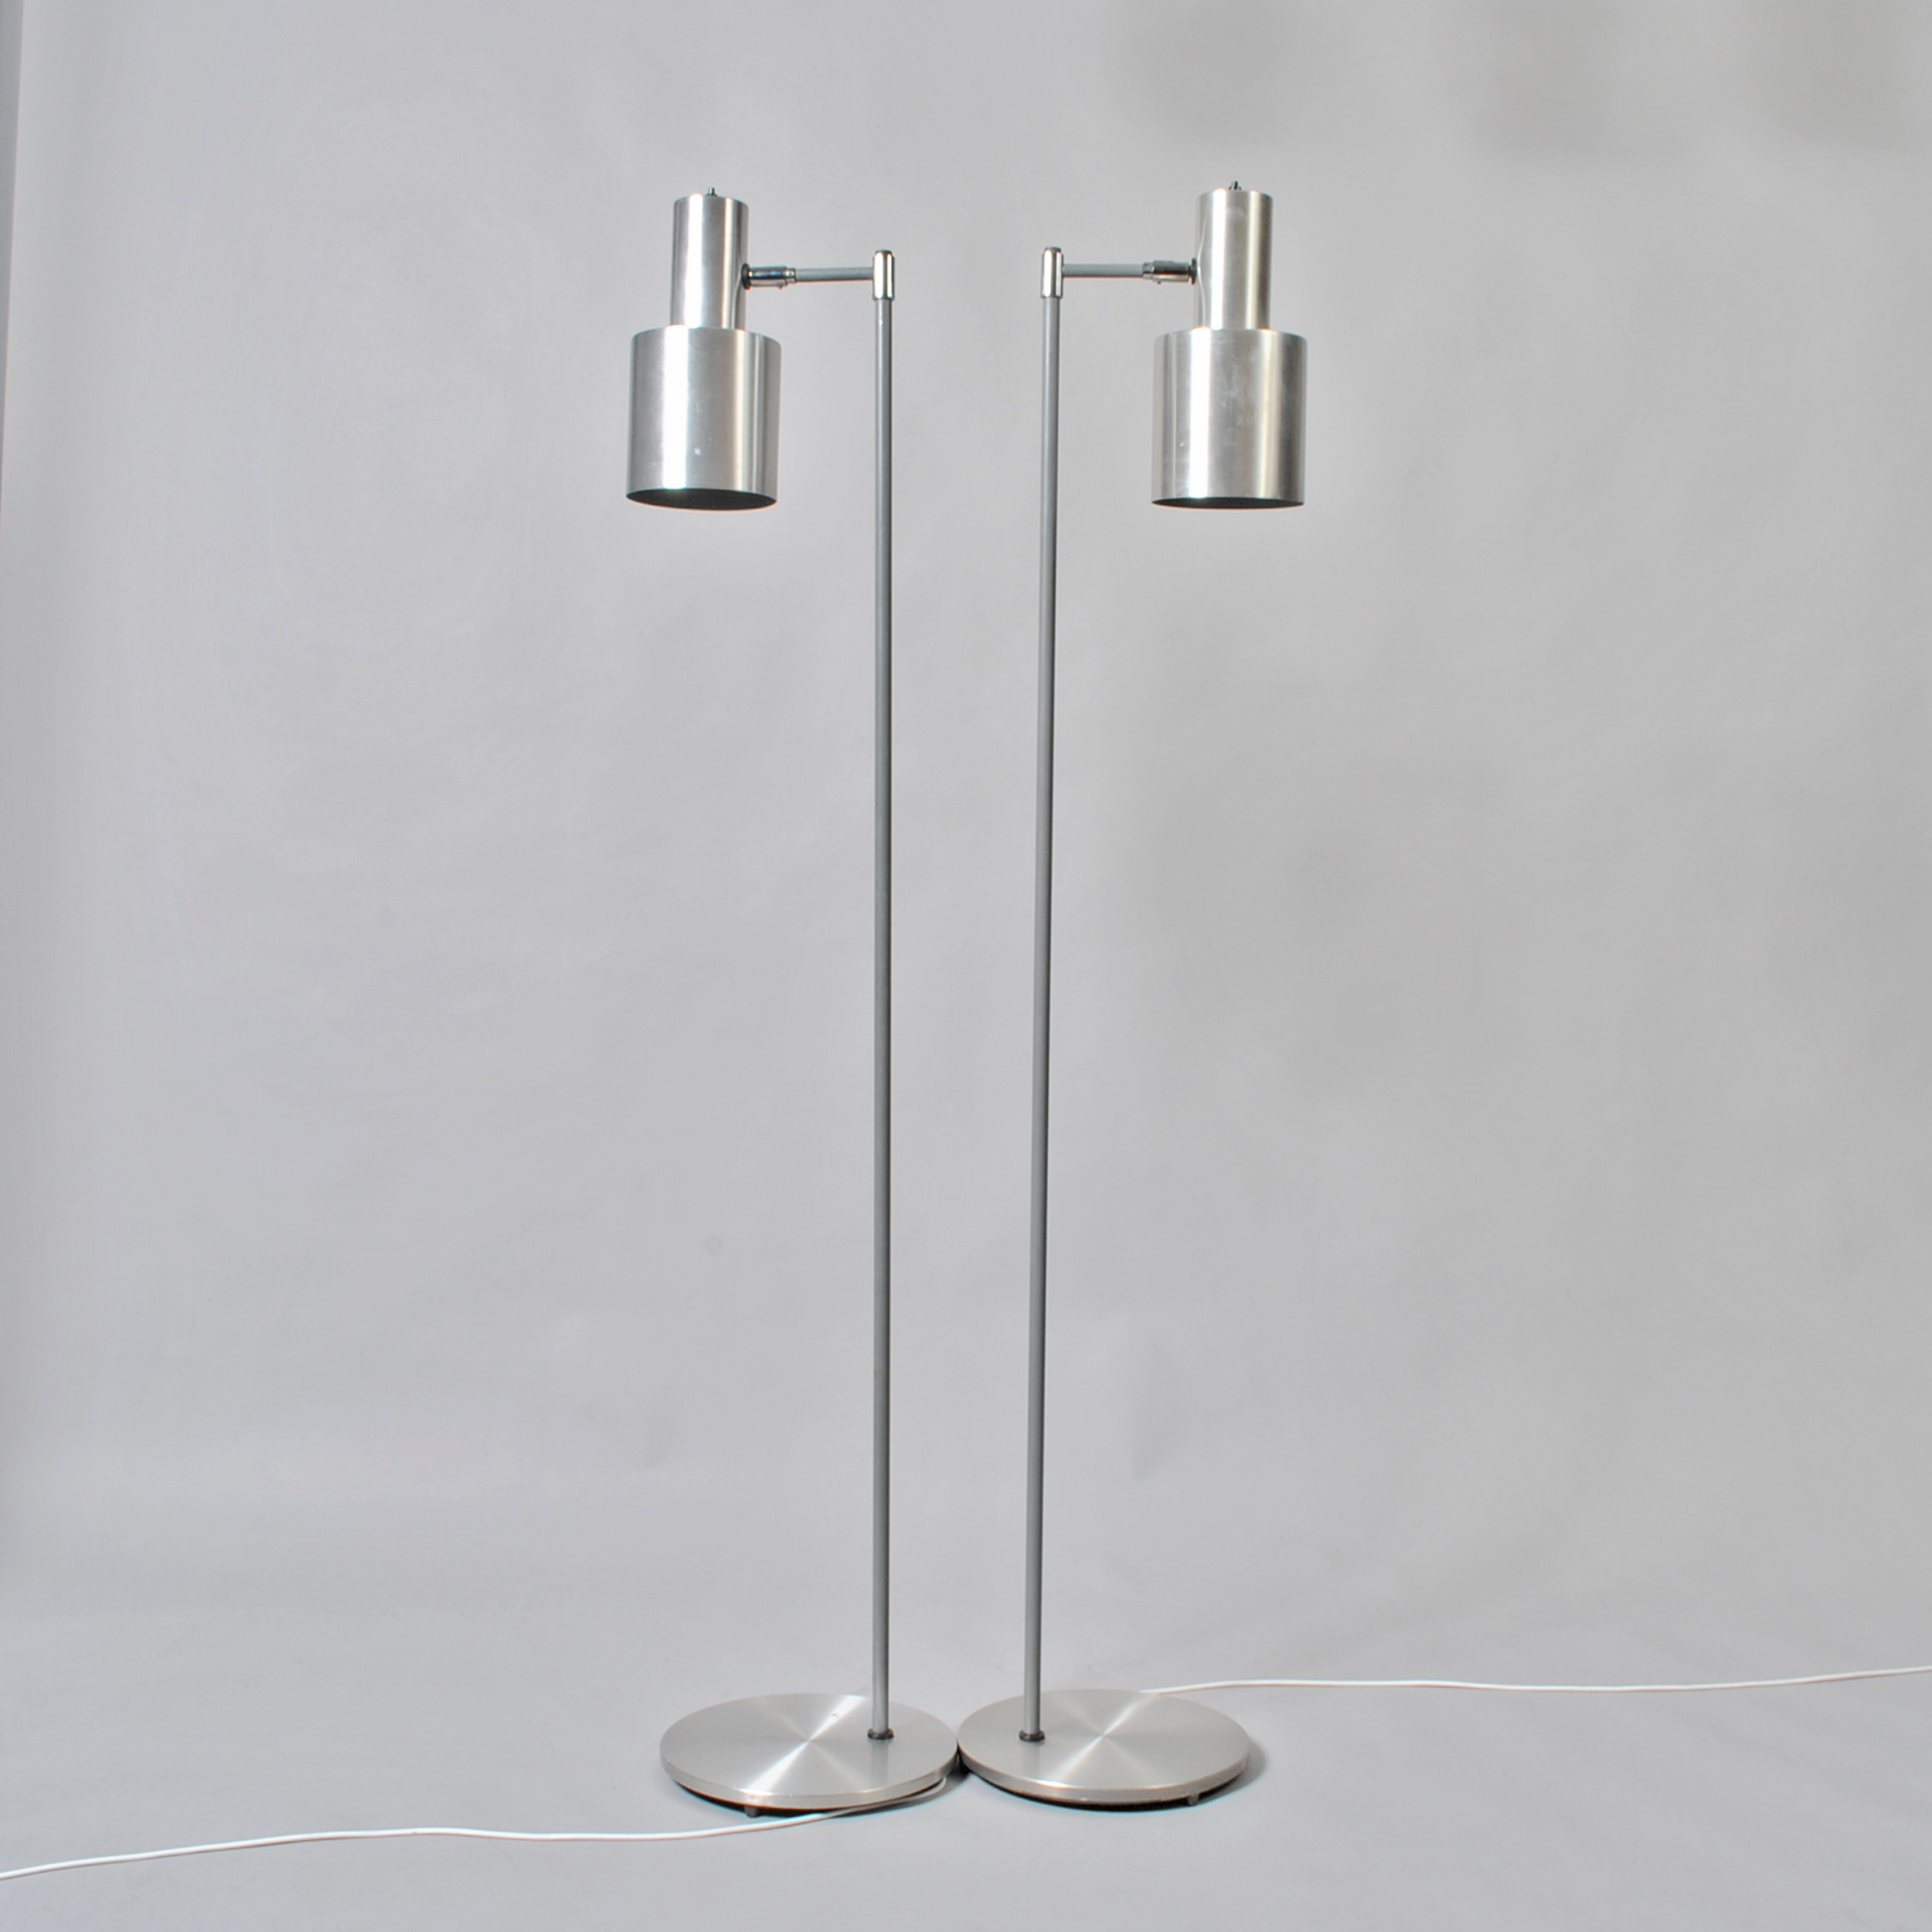 Studio Floor lamps